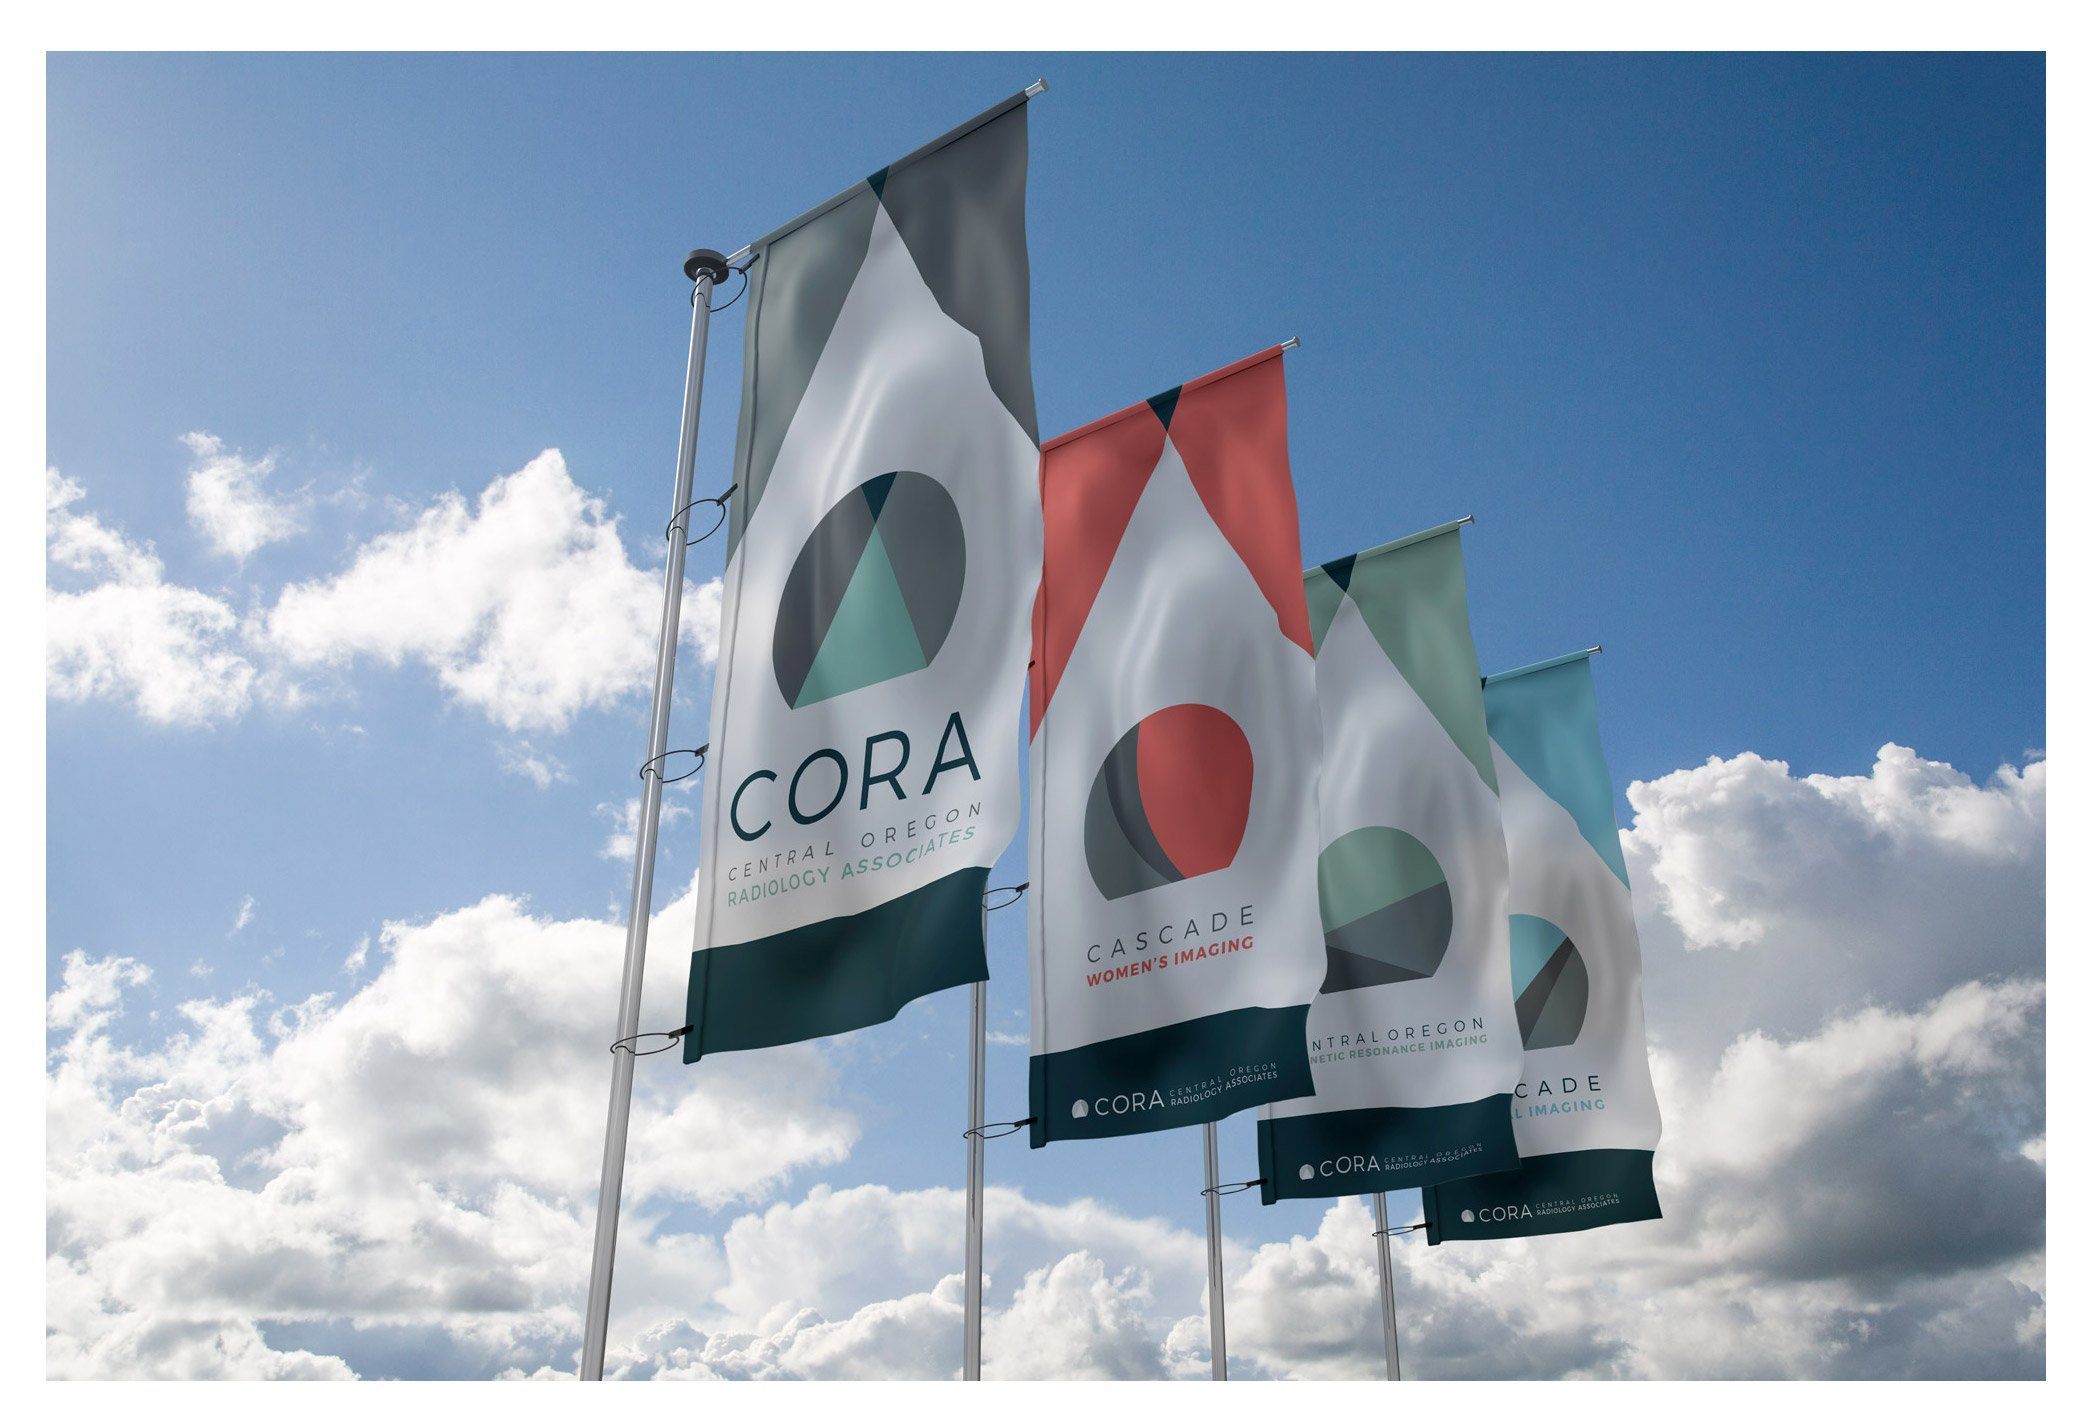 CORA_4_flags_casestudy